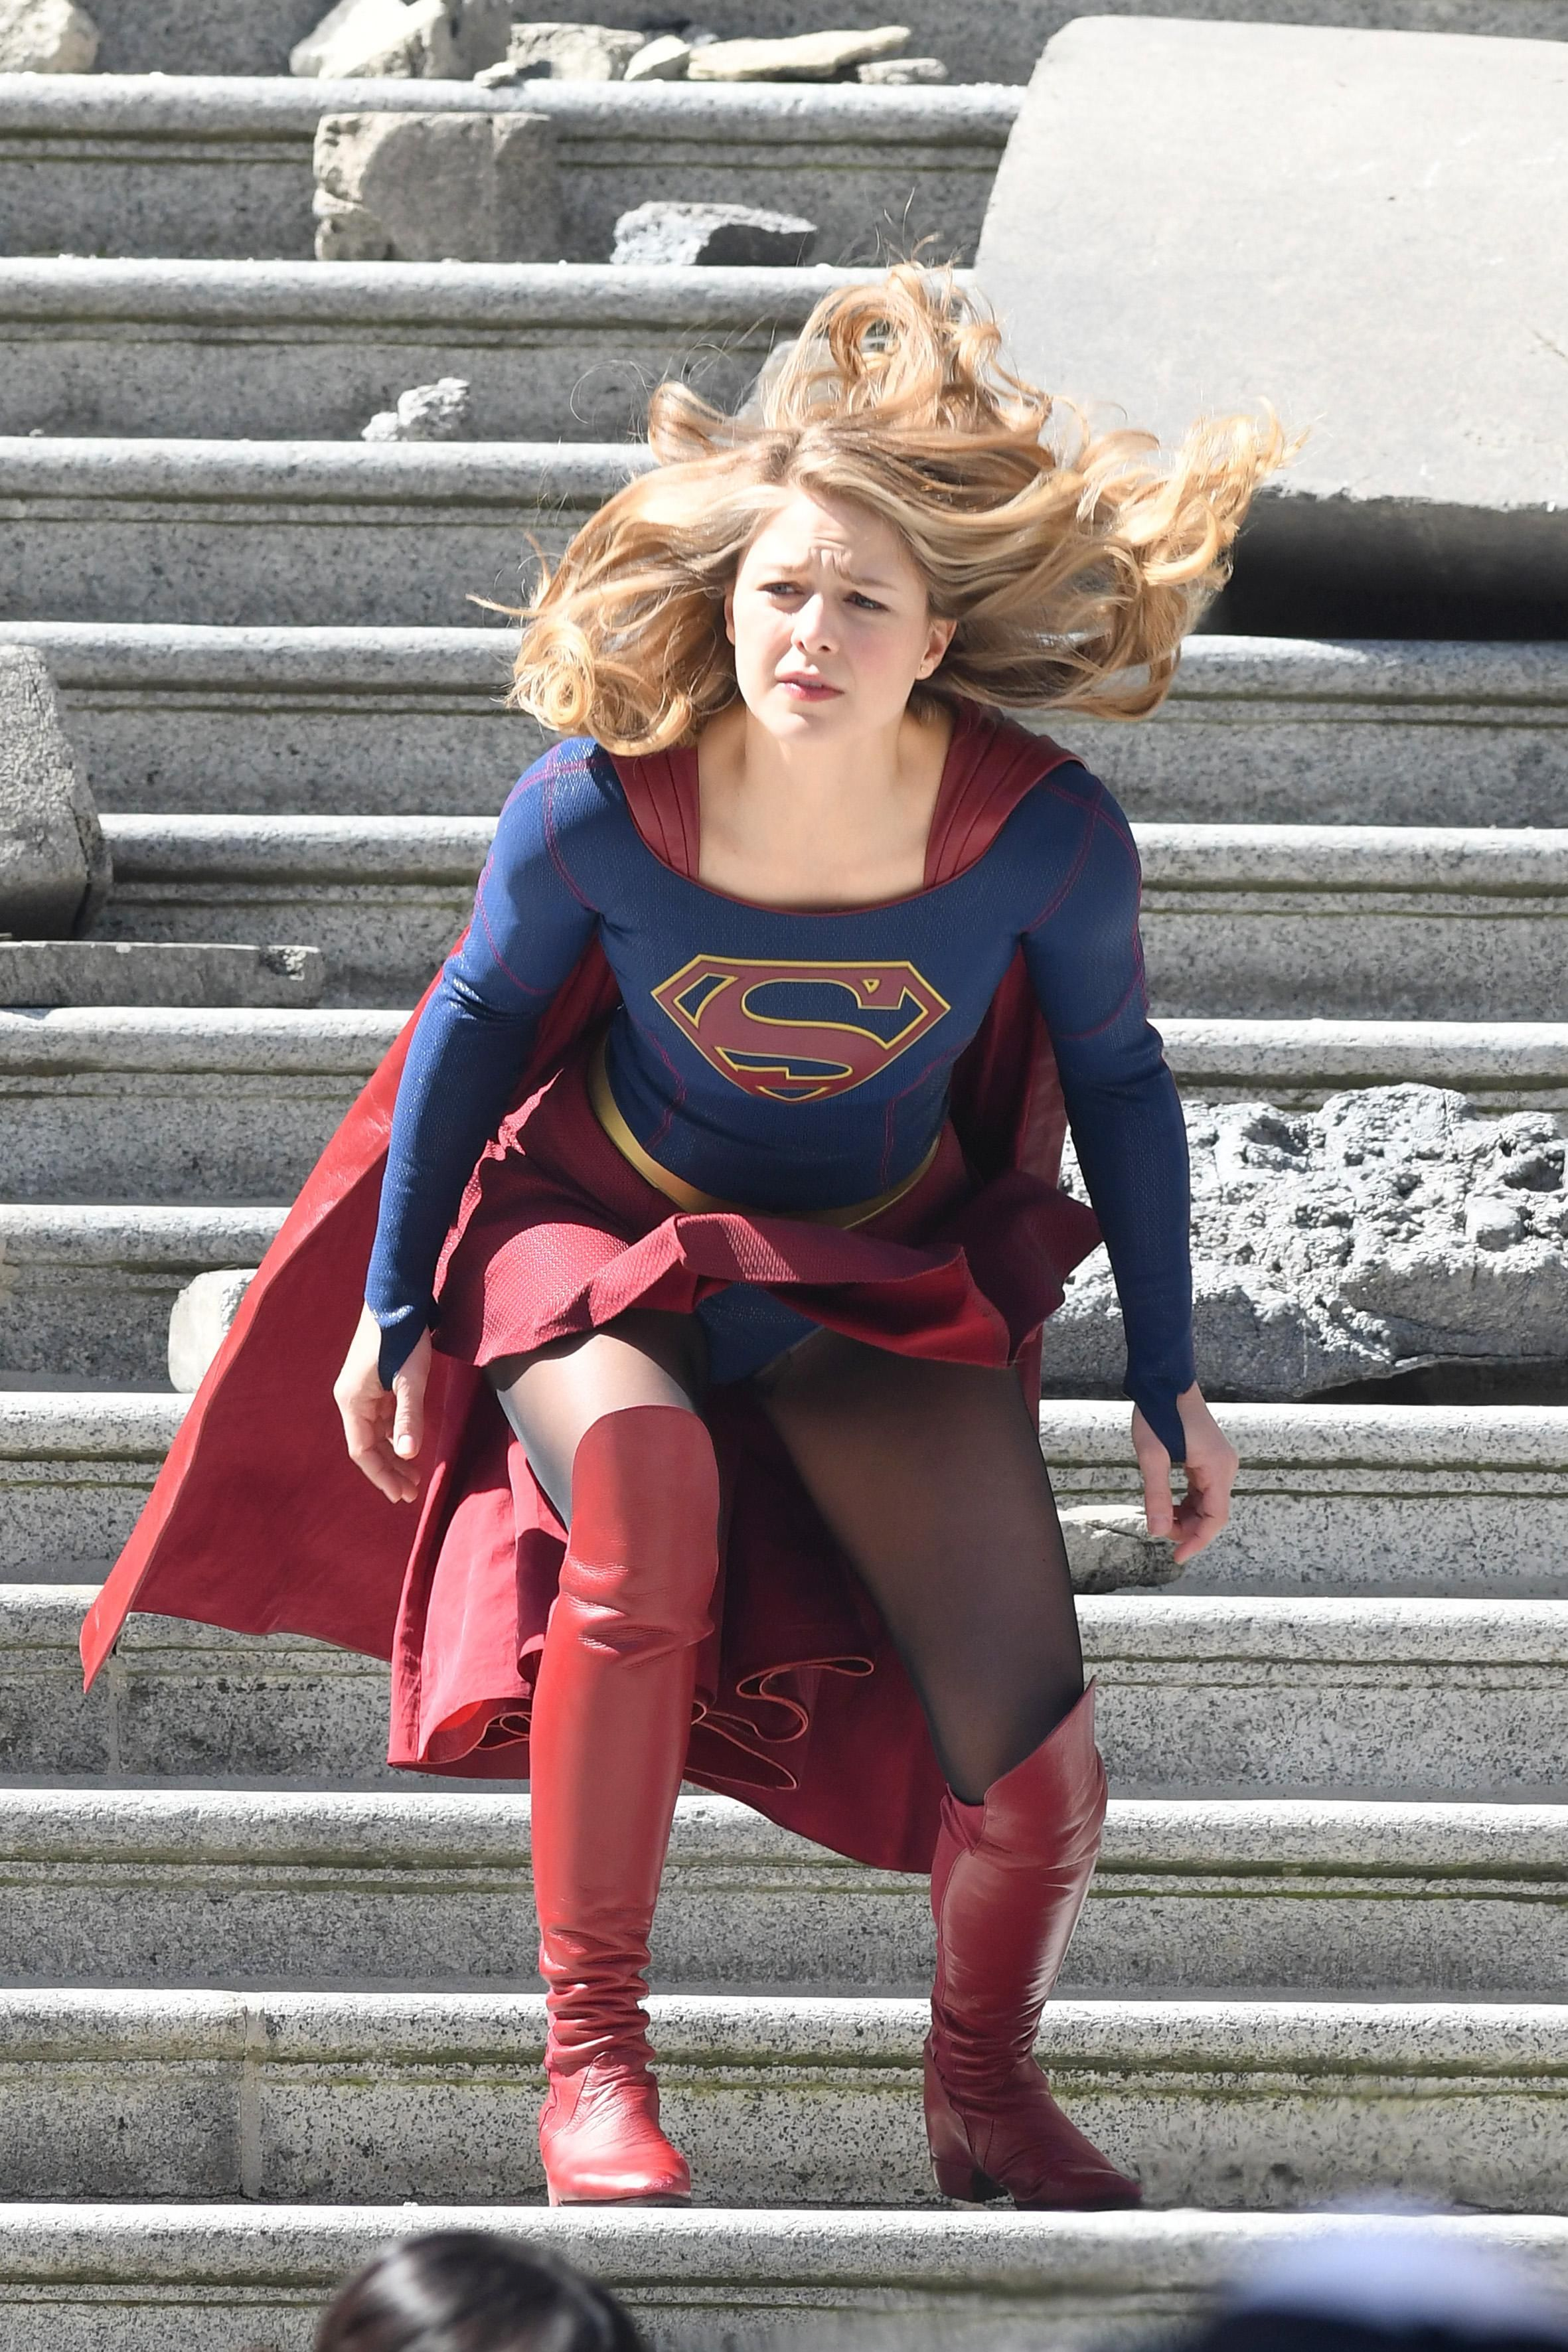 sexy supergirl nude pic